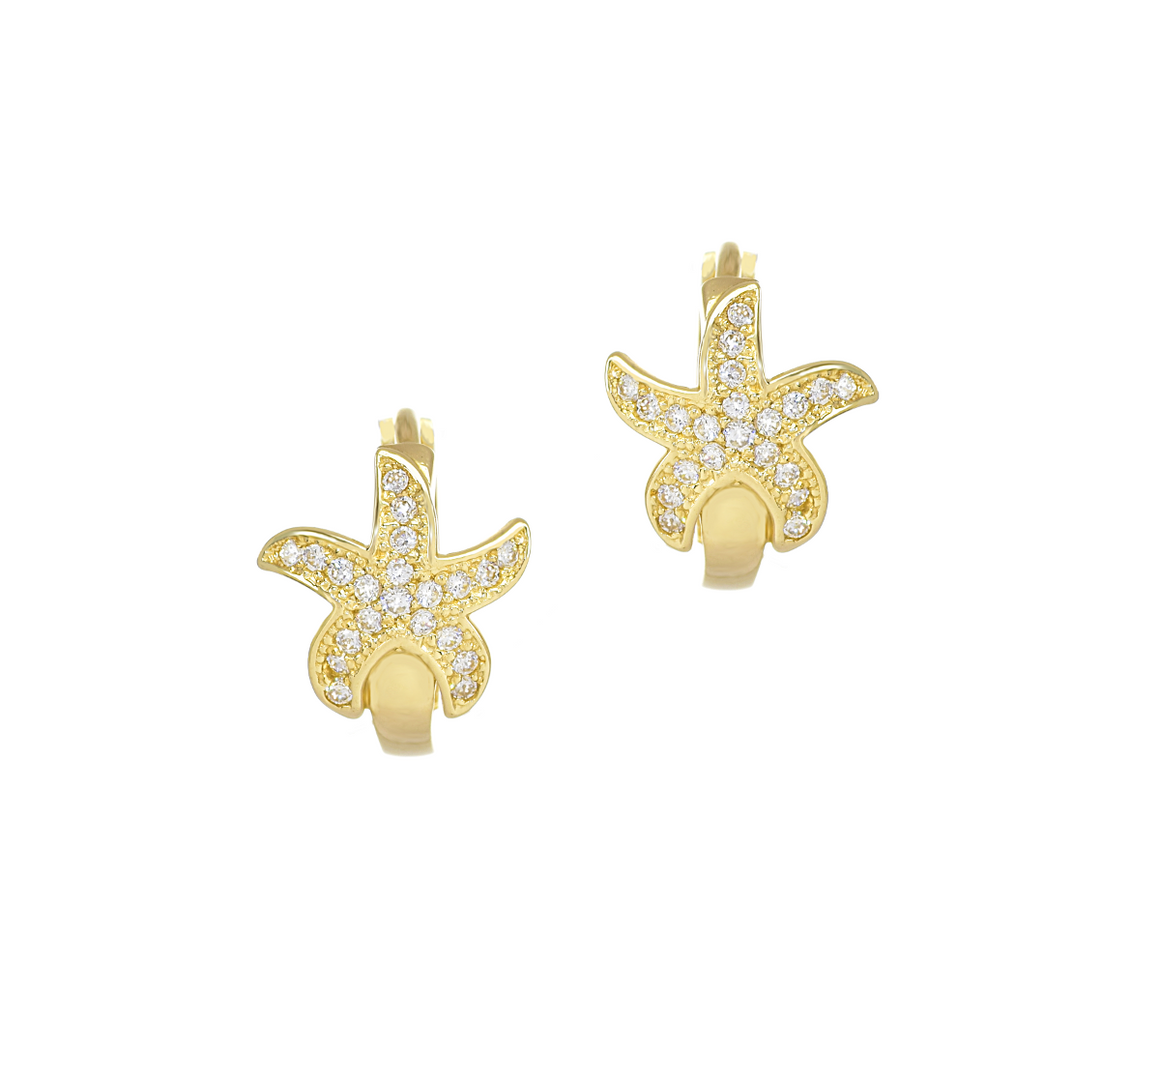 Starfish Hoop Earrings with Cubic Zirconia Stones in 14K Yellow Gold - Anny Gabriella NY